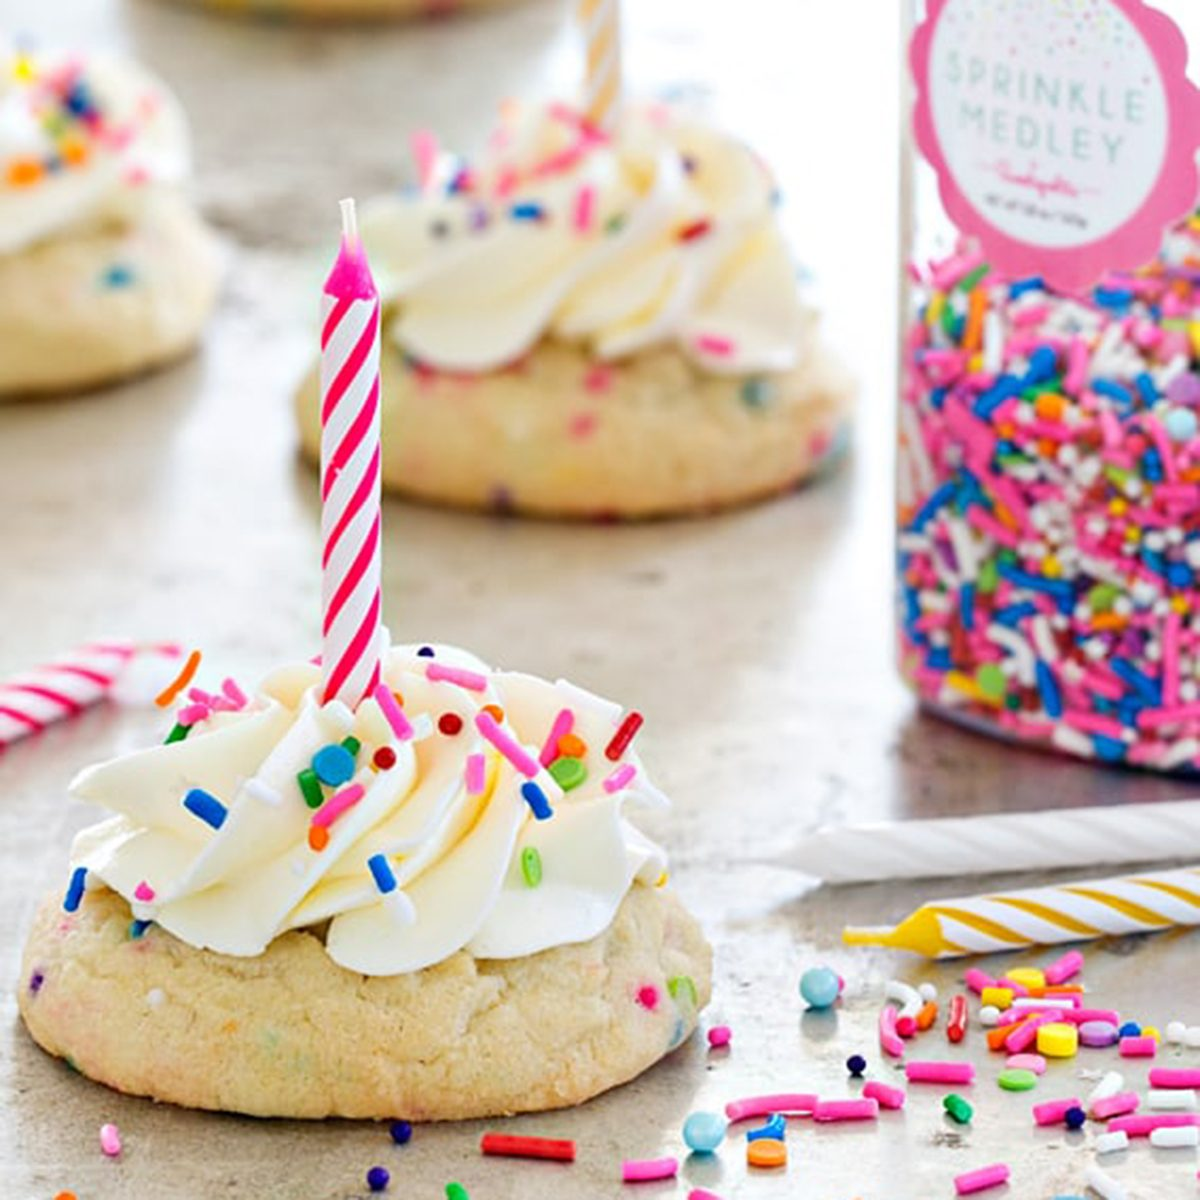 15 Cute Birthday Cake Inspired Recipes